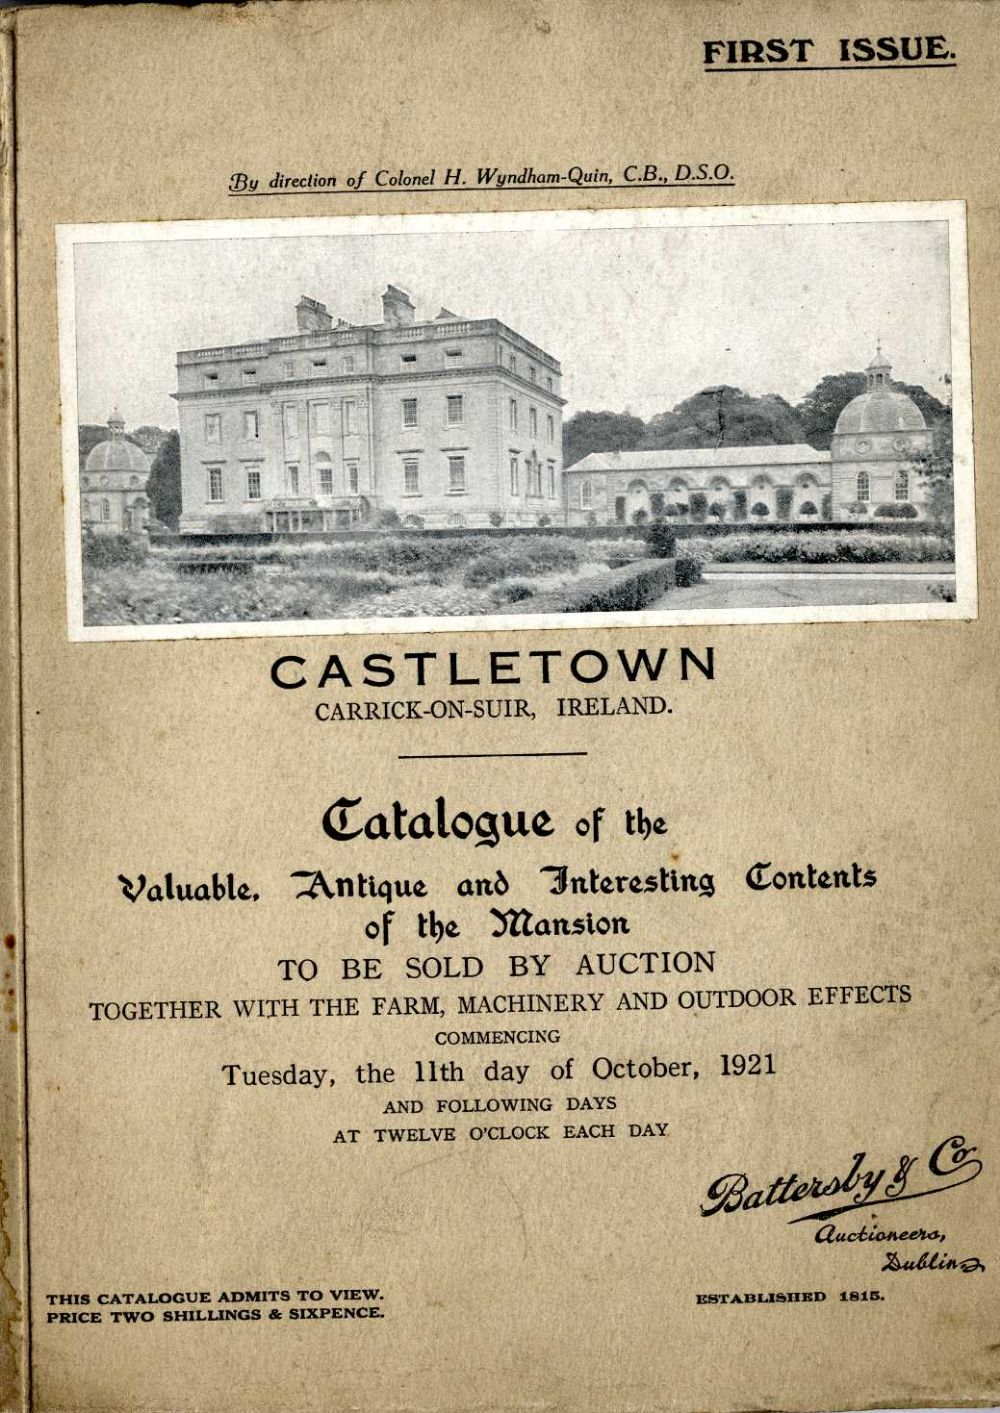 a11db0a9c8 Lot 329 - Rare Country House Auction Catalogue Co. Tipperary Auction   Castletown